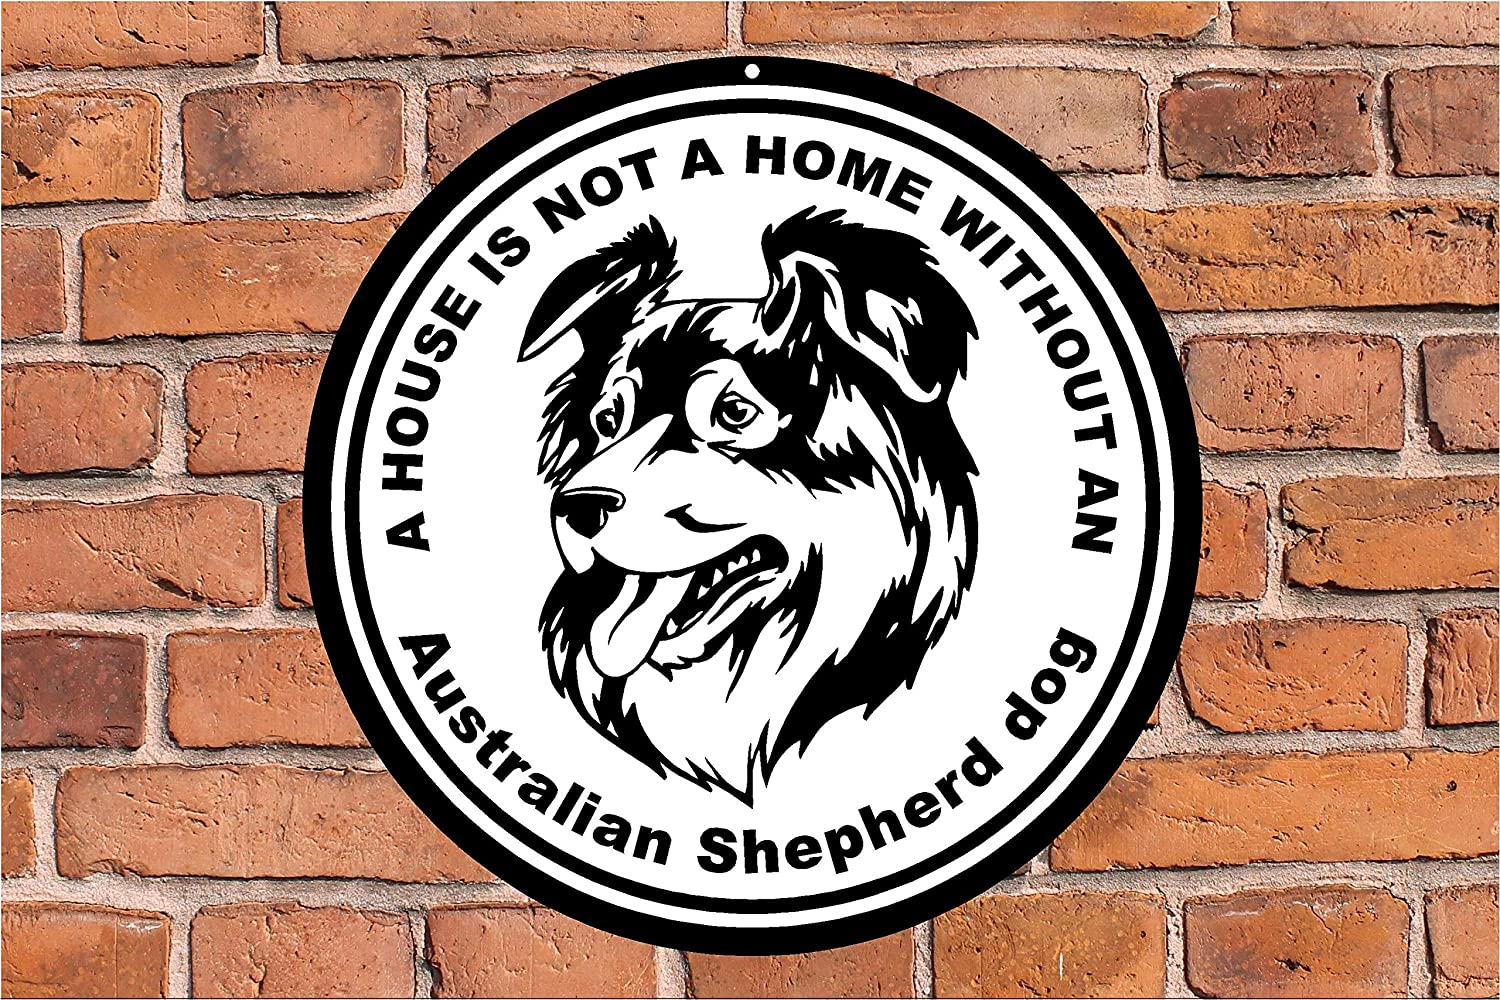 EricauBird A House is not a Home Without an Australian Shepherd Guard Dog Guard Dog Round Metal Wall Sign Funny Dog Lover Gift Decorative Breed Aluminum Sign Yard Home Decor